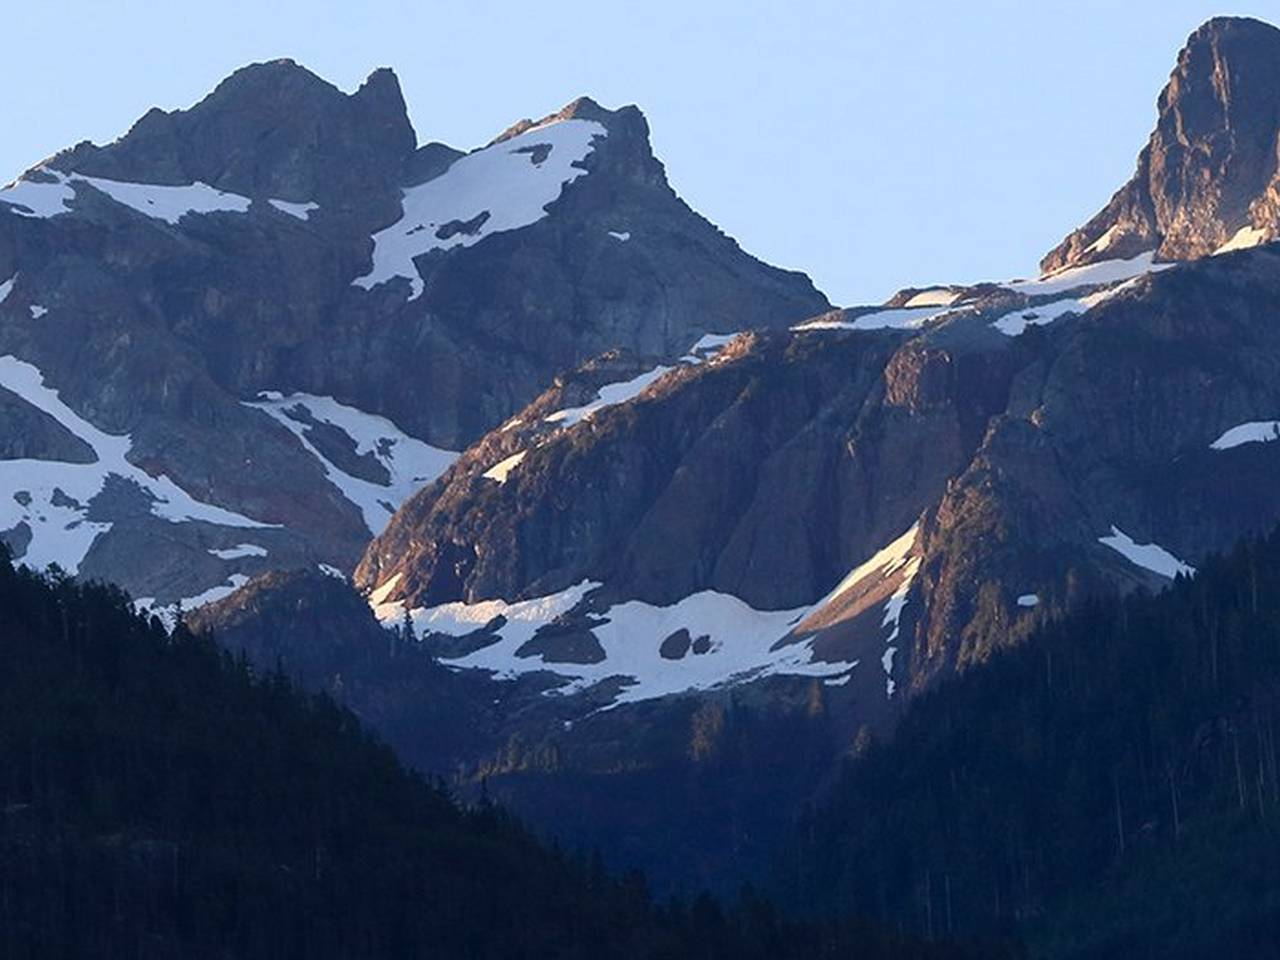 Landscape mountain range